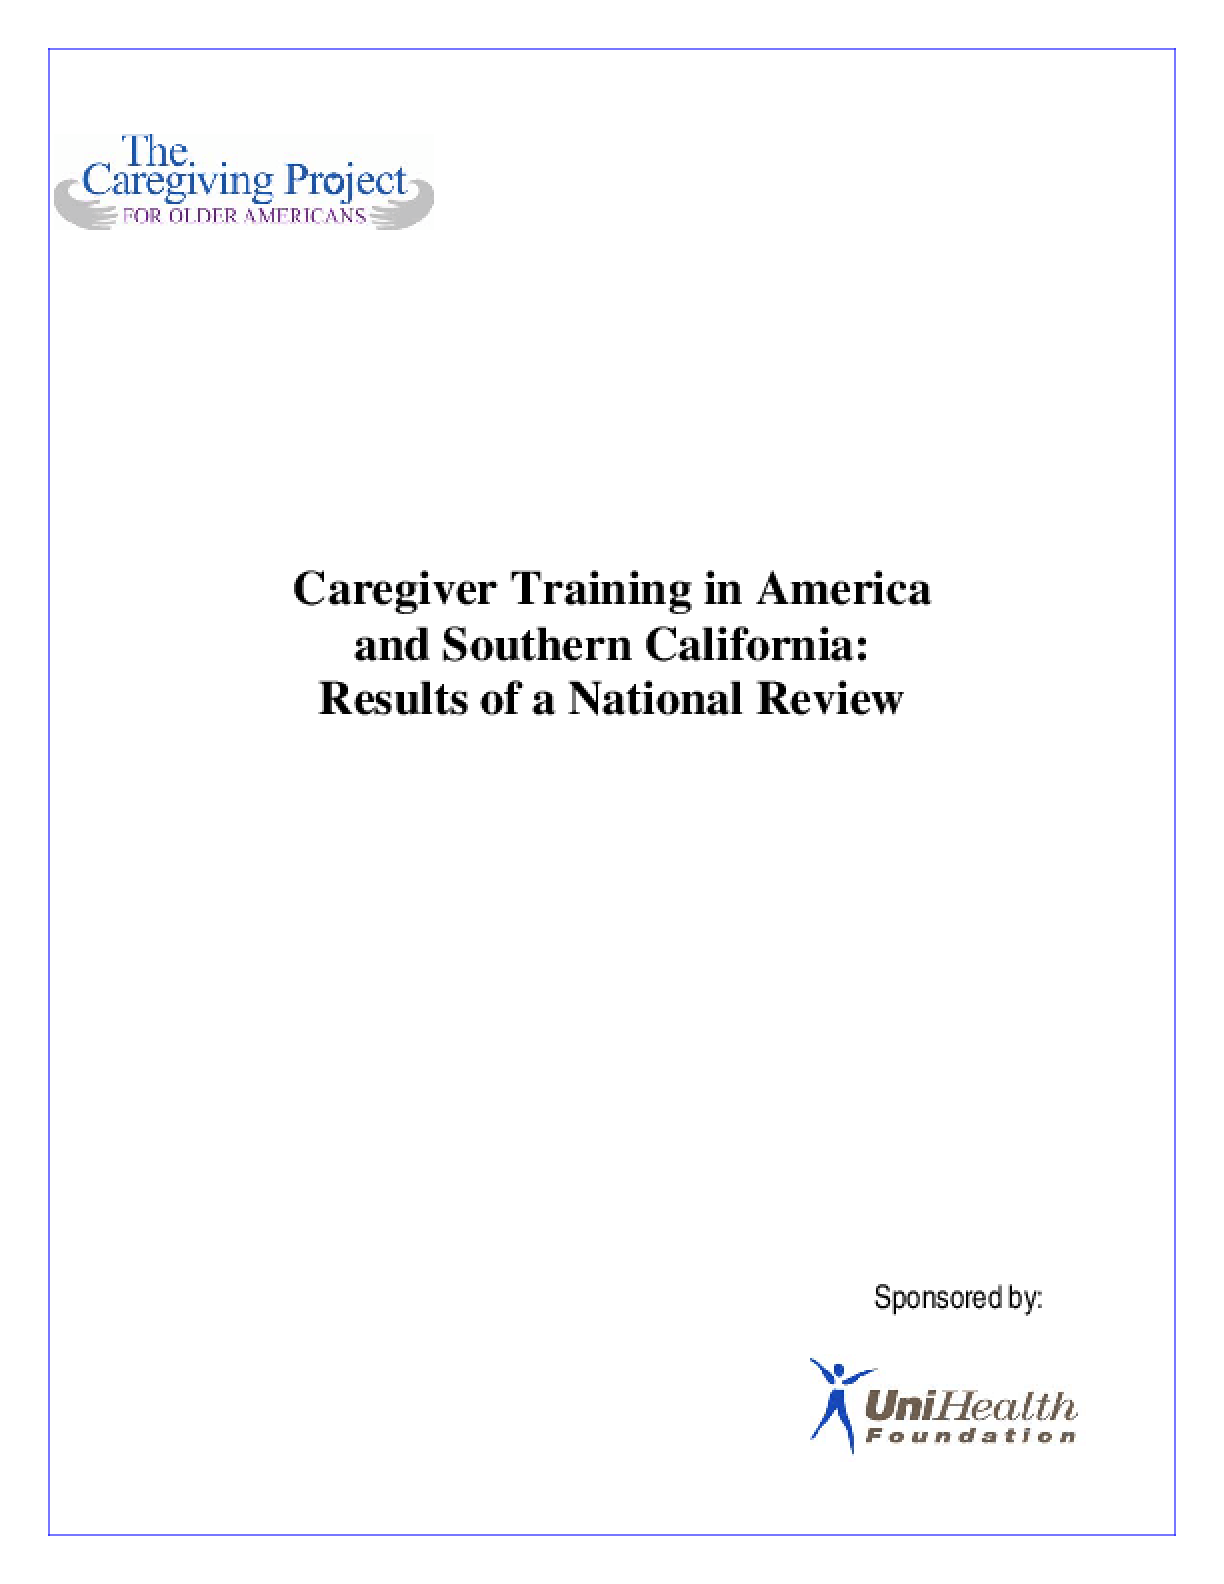 Caregiving Training in America & Southern California